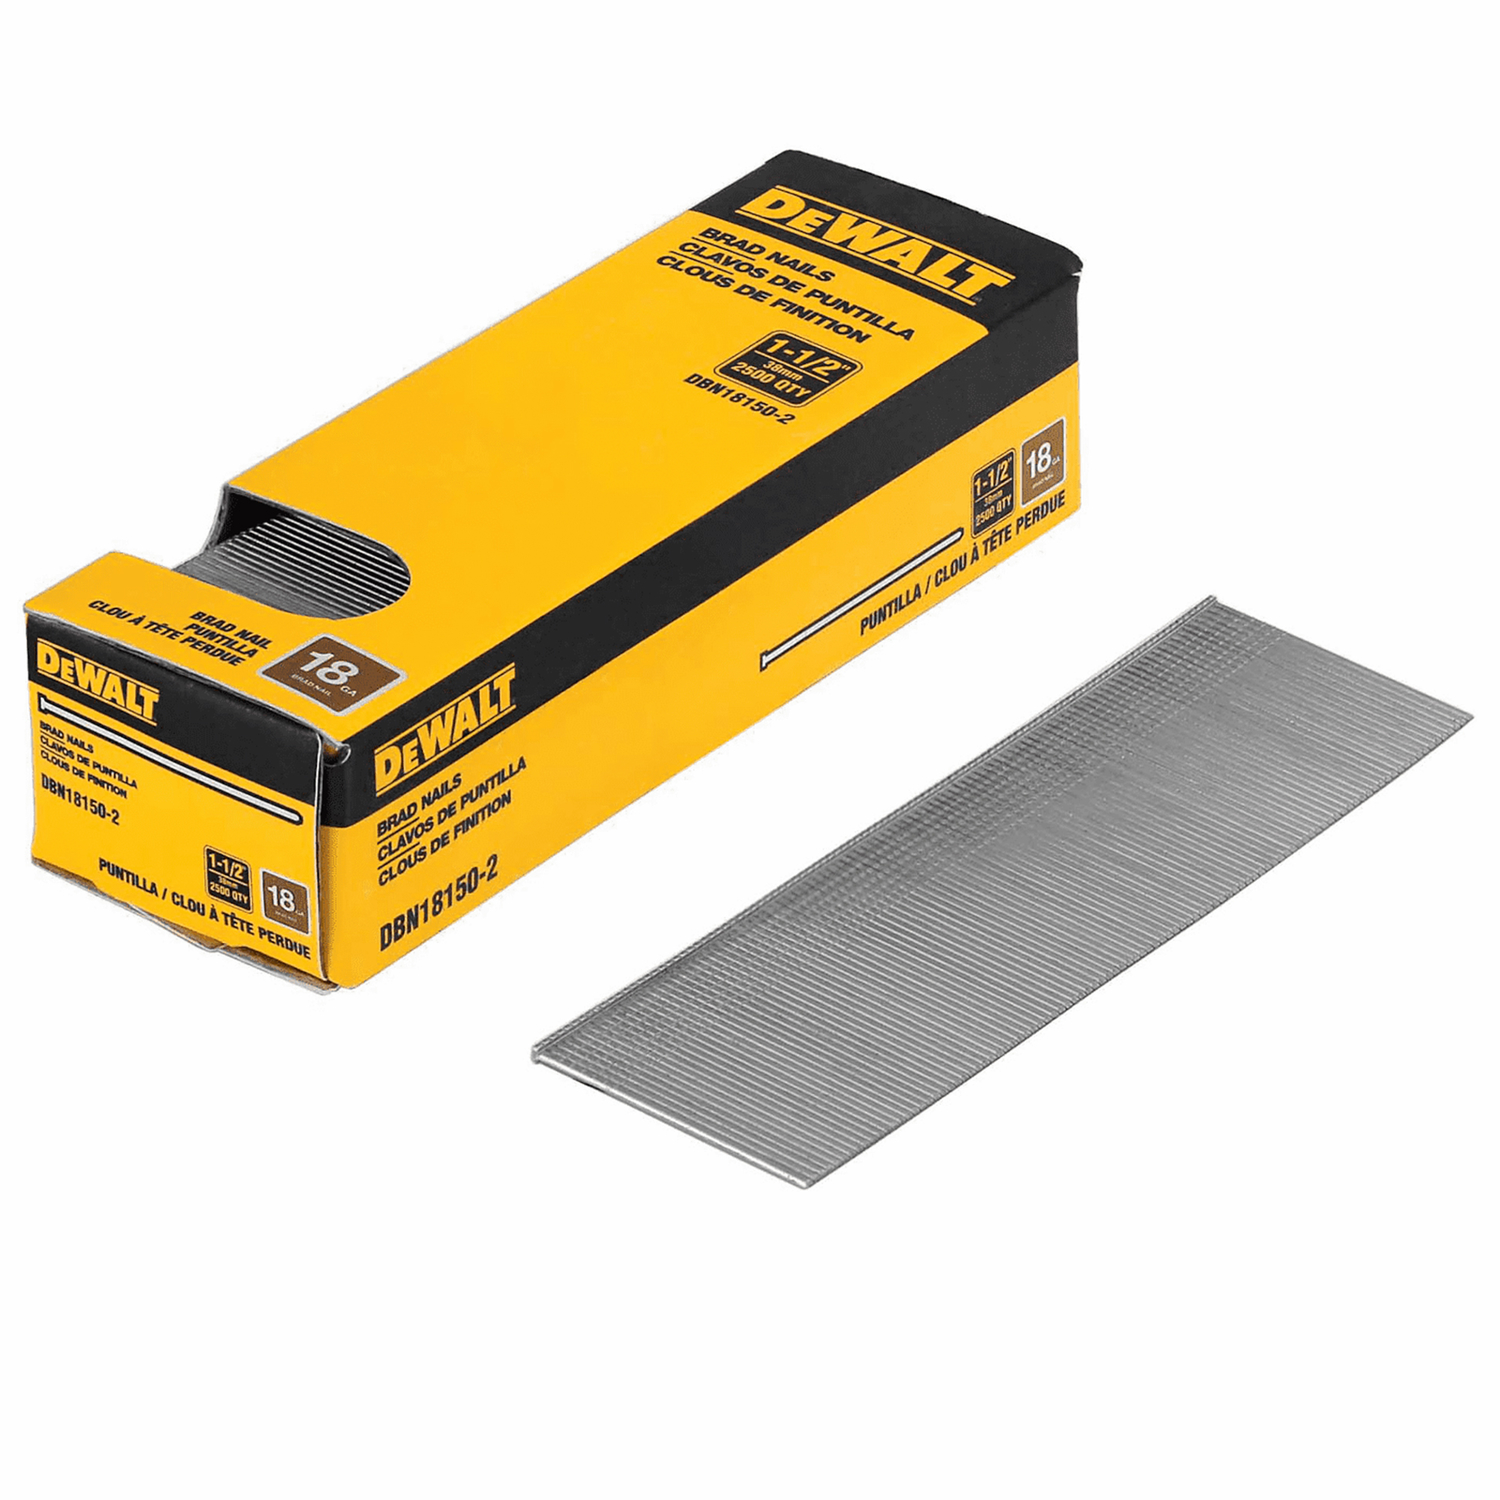 DeWalt 1-1/2 in. 18 Ga. Straight Strip Brad Nails Smooth Shank 2500 pk